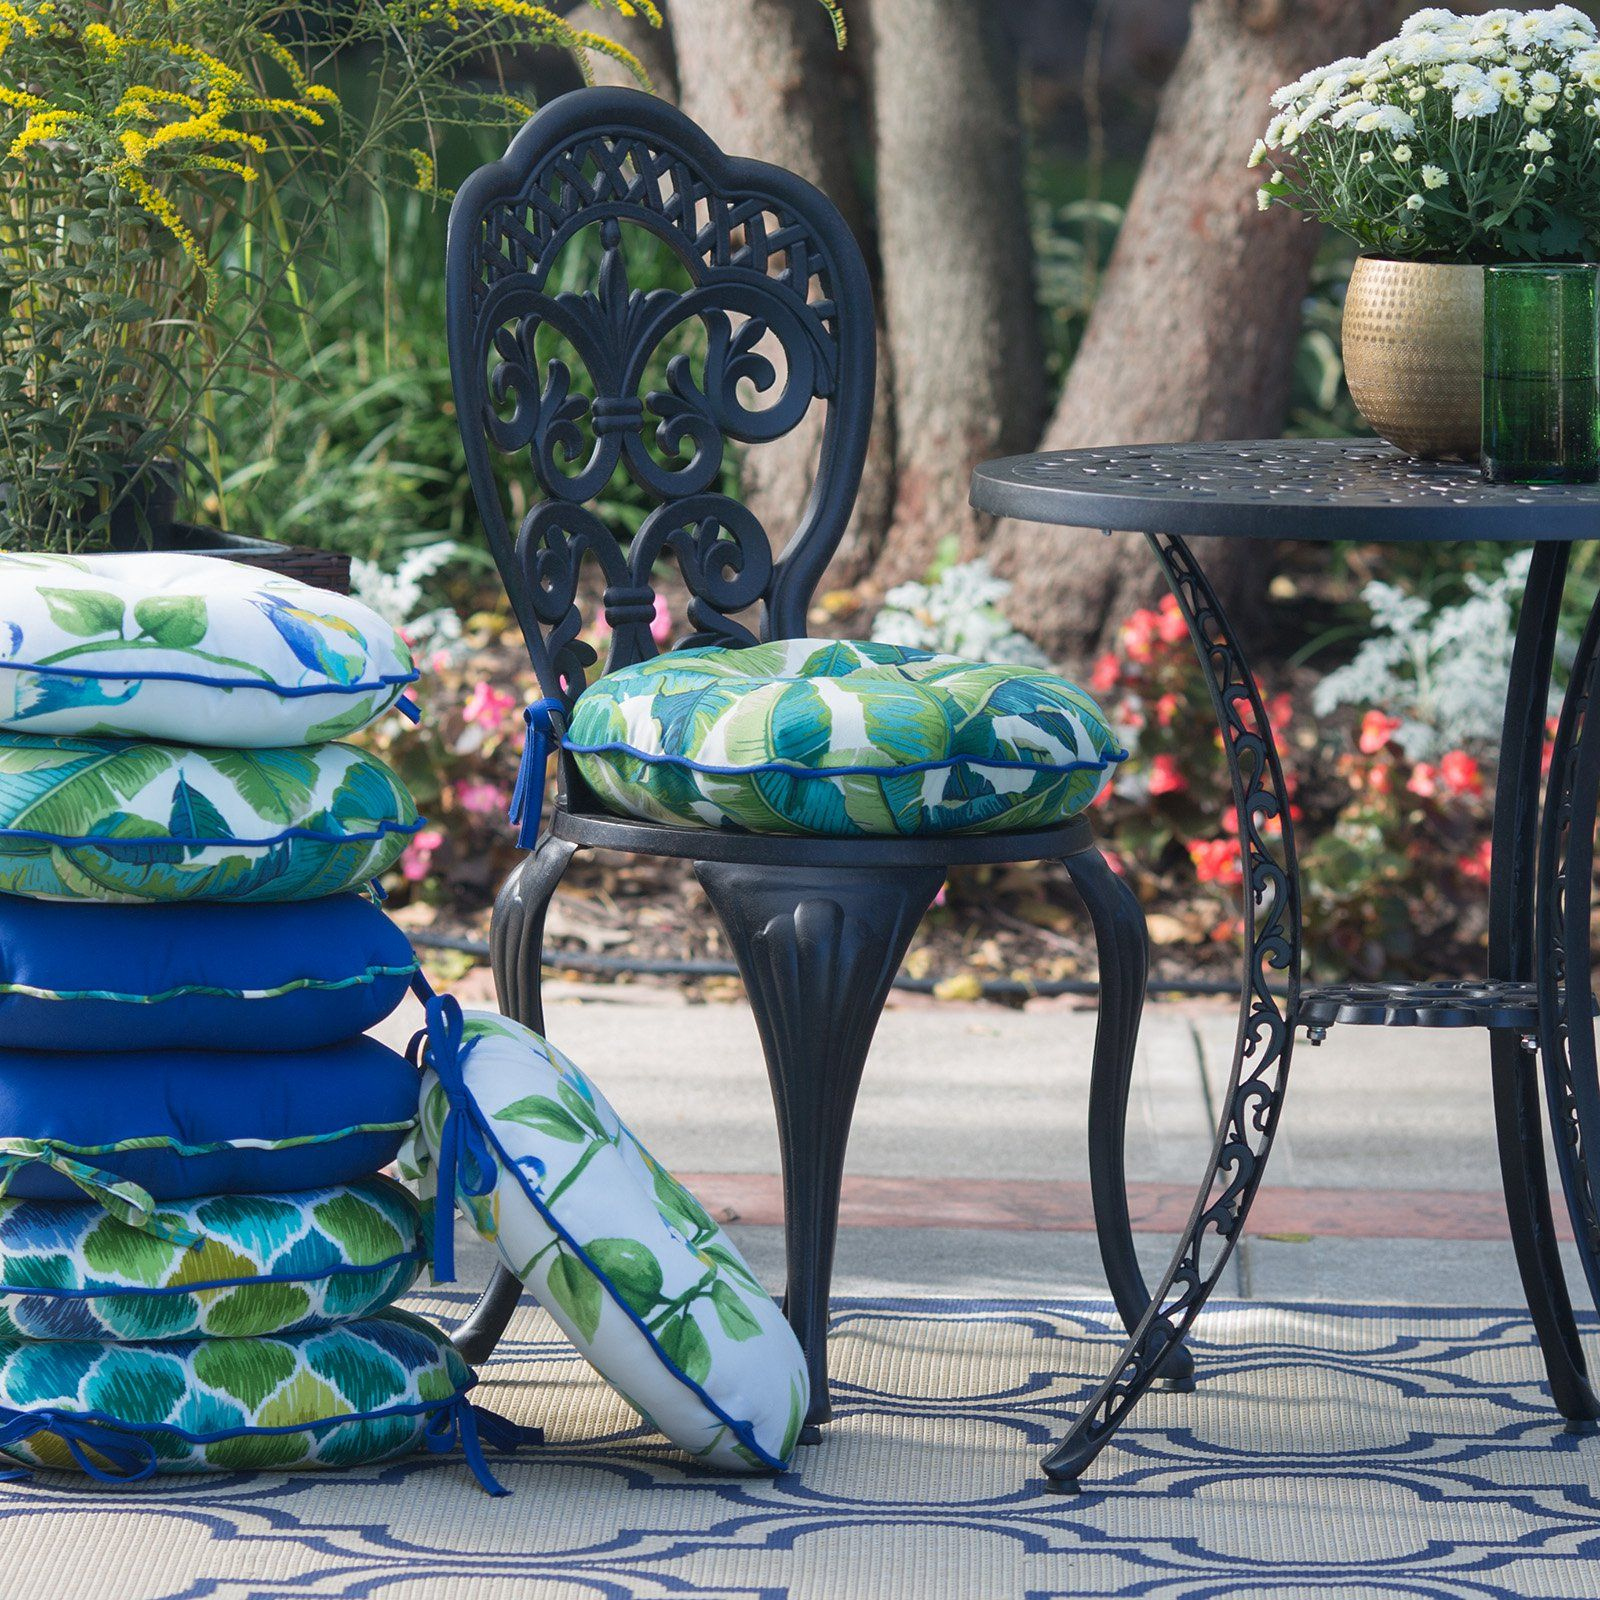 Ordinaire Coral Coast Curious Tropical Bird 15 In. Round Outdoor Bistro Chair Cushions    Set Of